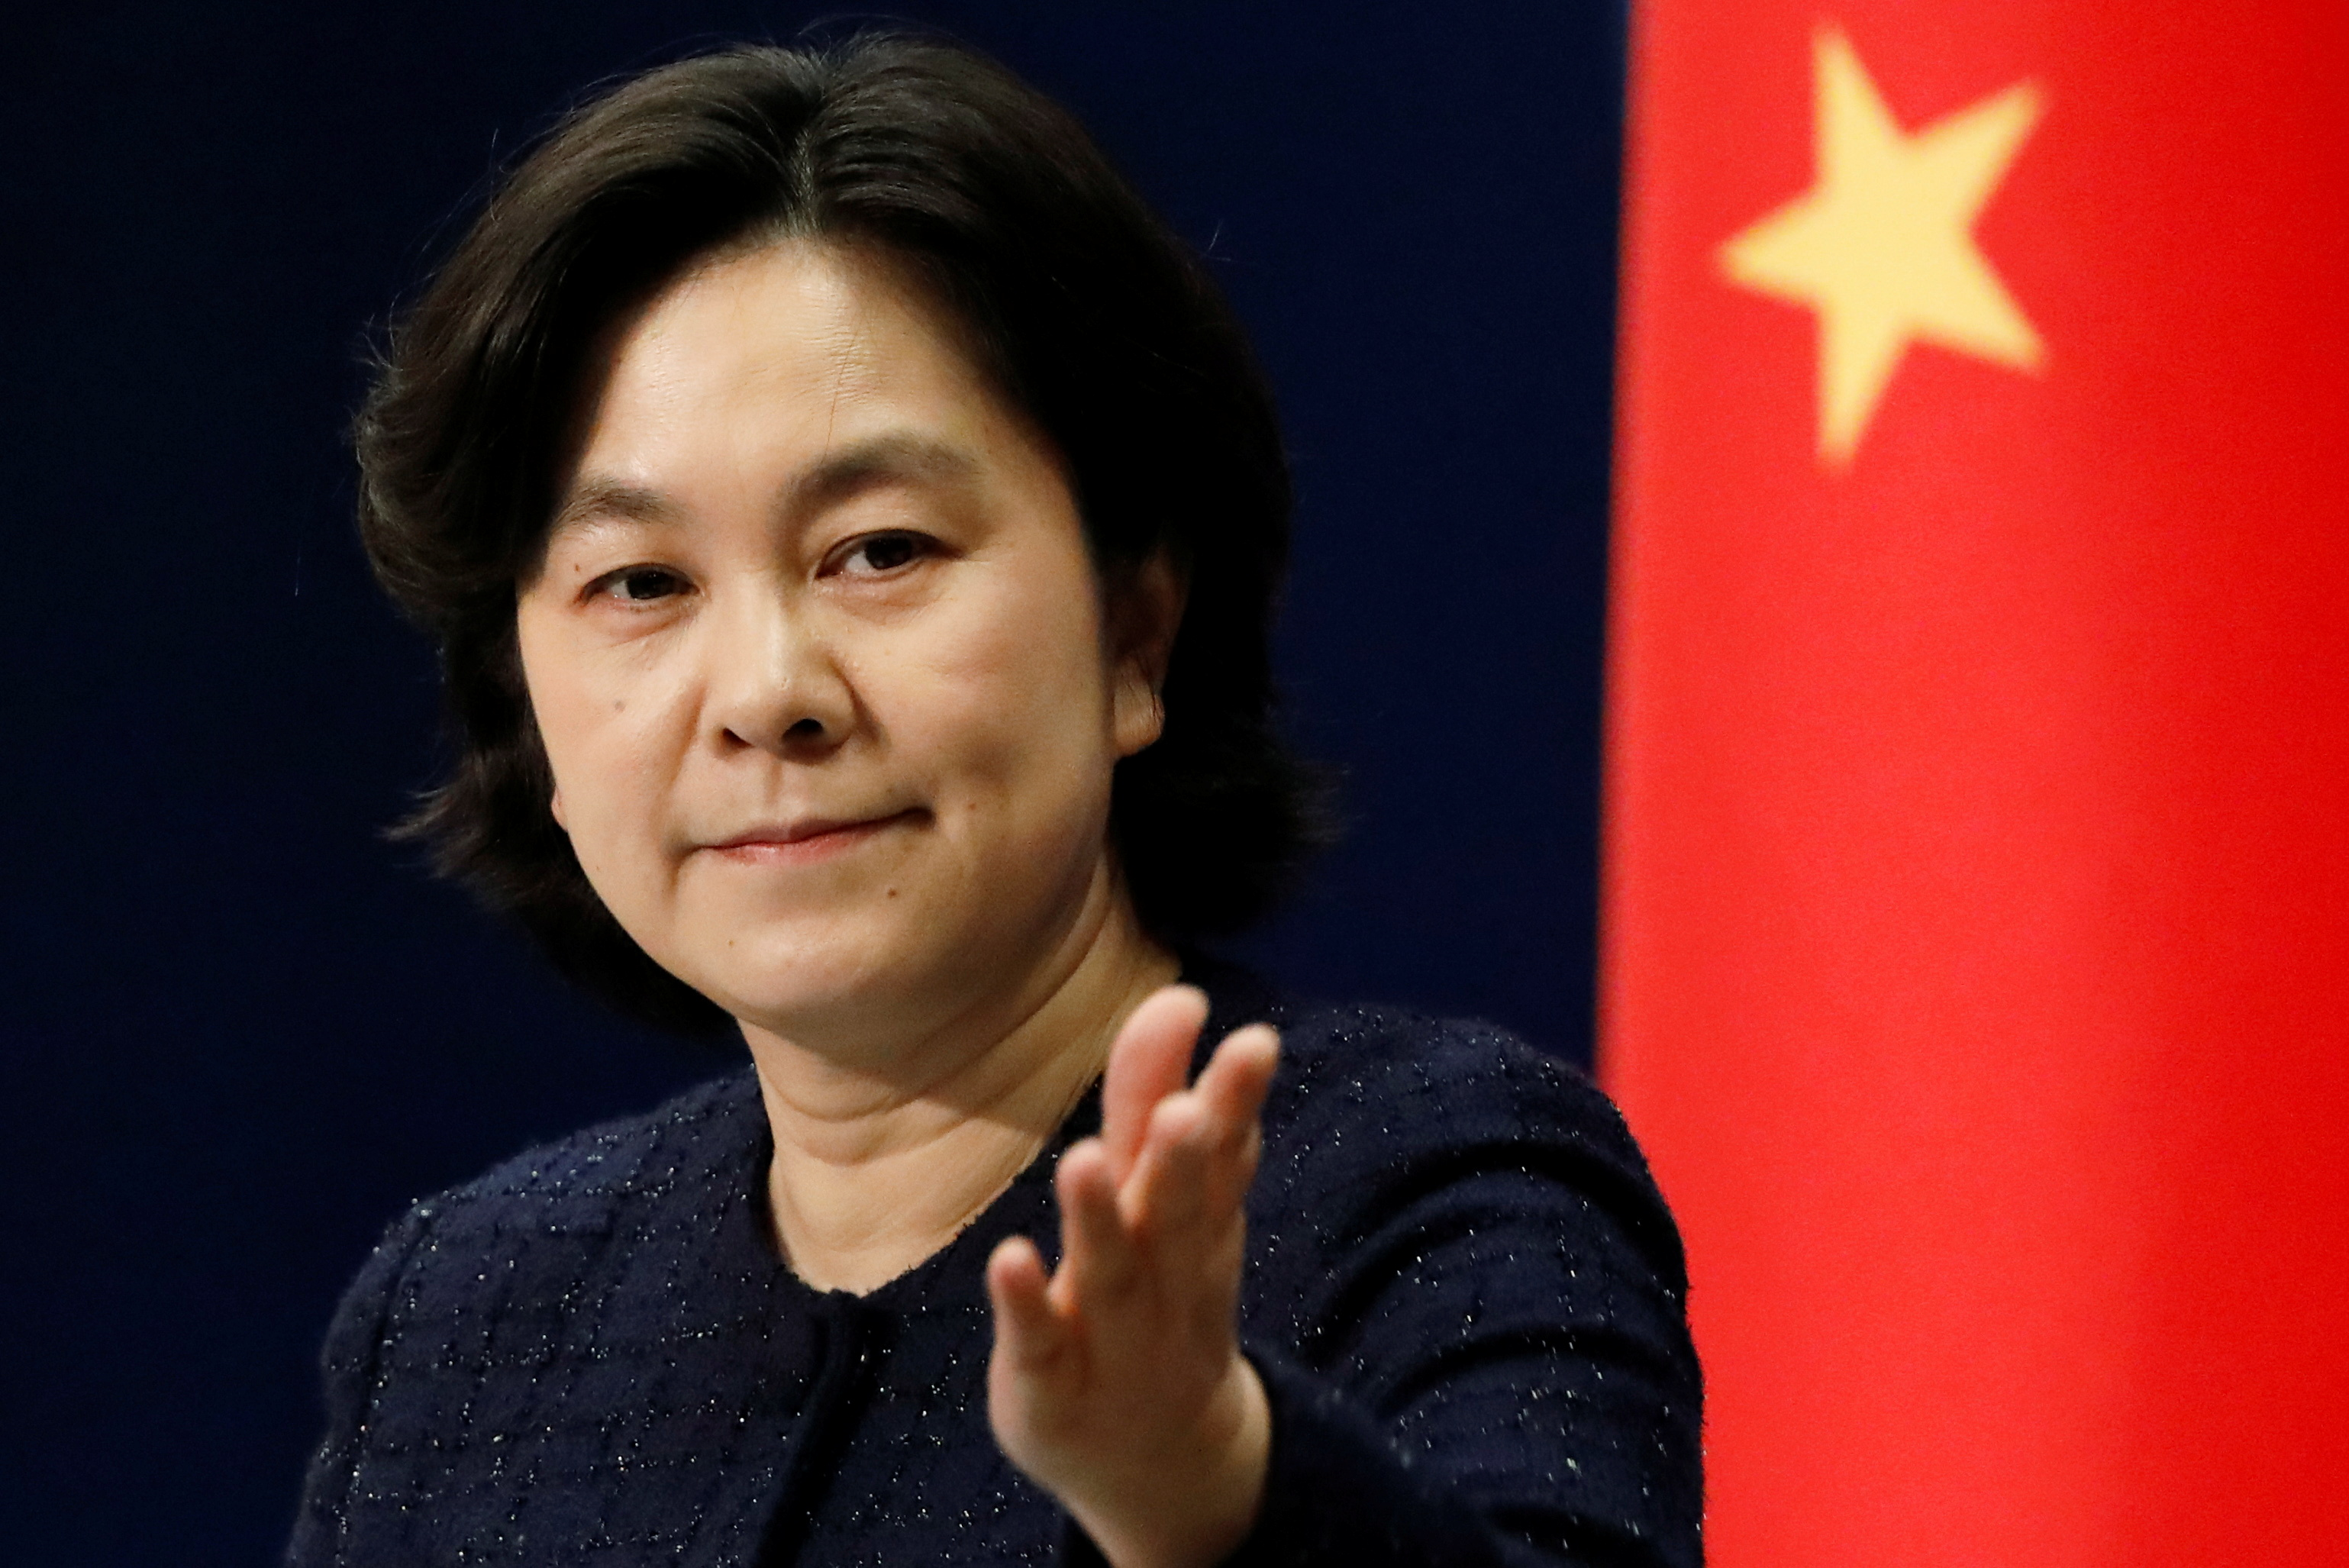 Chinese Foreign Ministry spokeswoman Hua Chunying attends a news conference in Beijing, China January 21, 2021. REUTERS/Carlos Garcia Rawlins